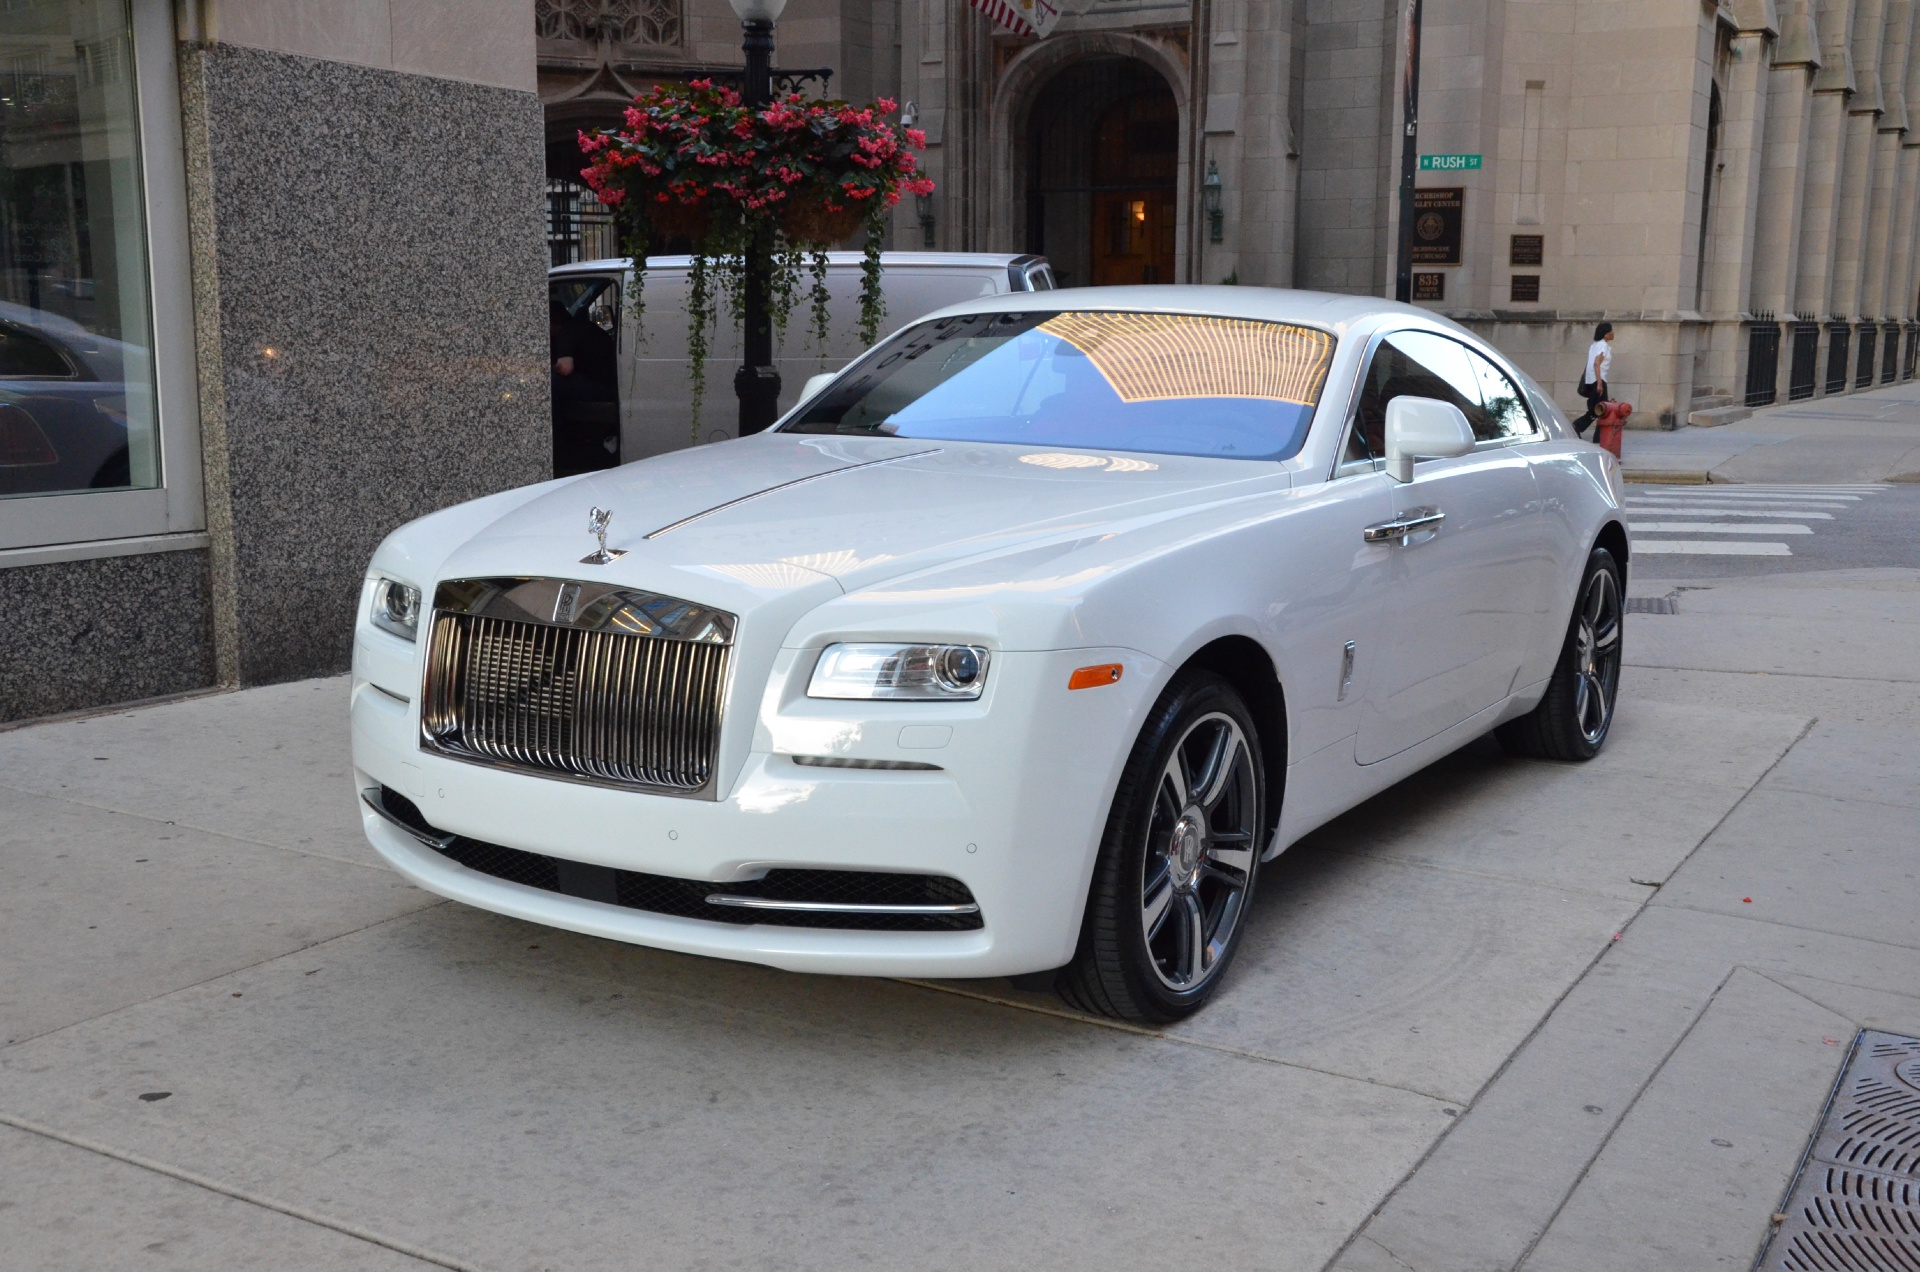 2014 rolls royce wraith stock r159 s for sale near. Black Bedroom Furniture Sets. Home Design Ideas